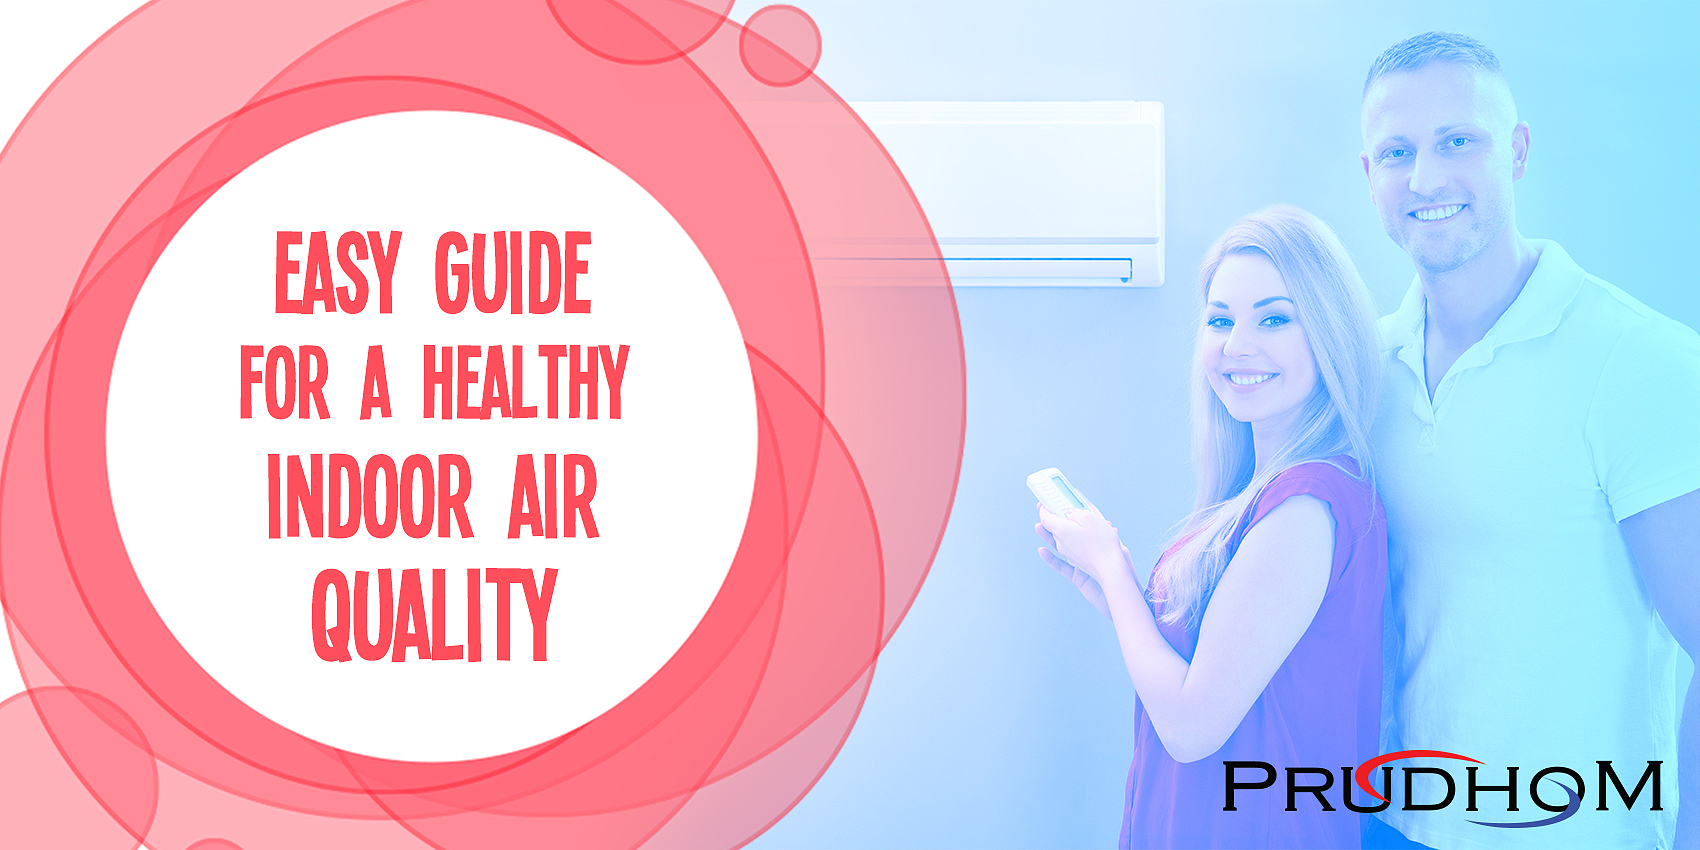 Easy Guide for a Healthy Indoor Air Quality